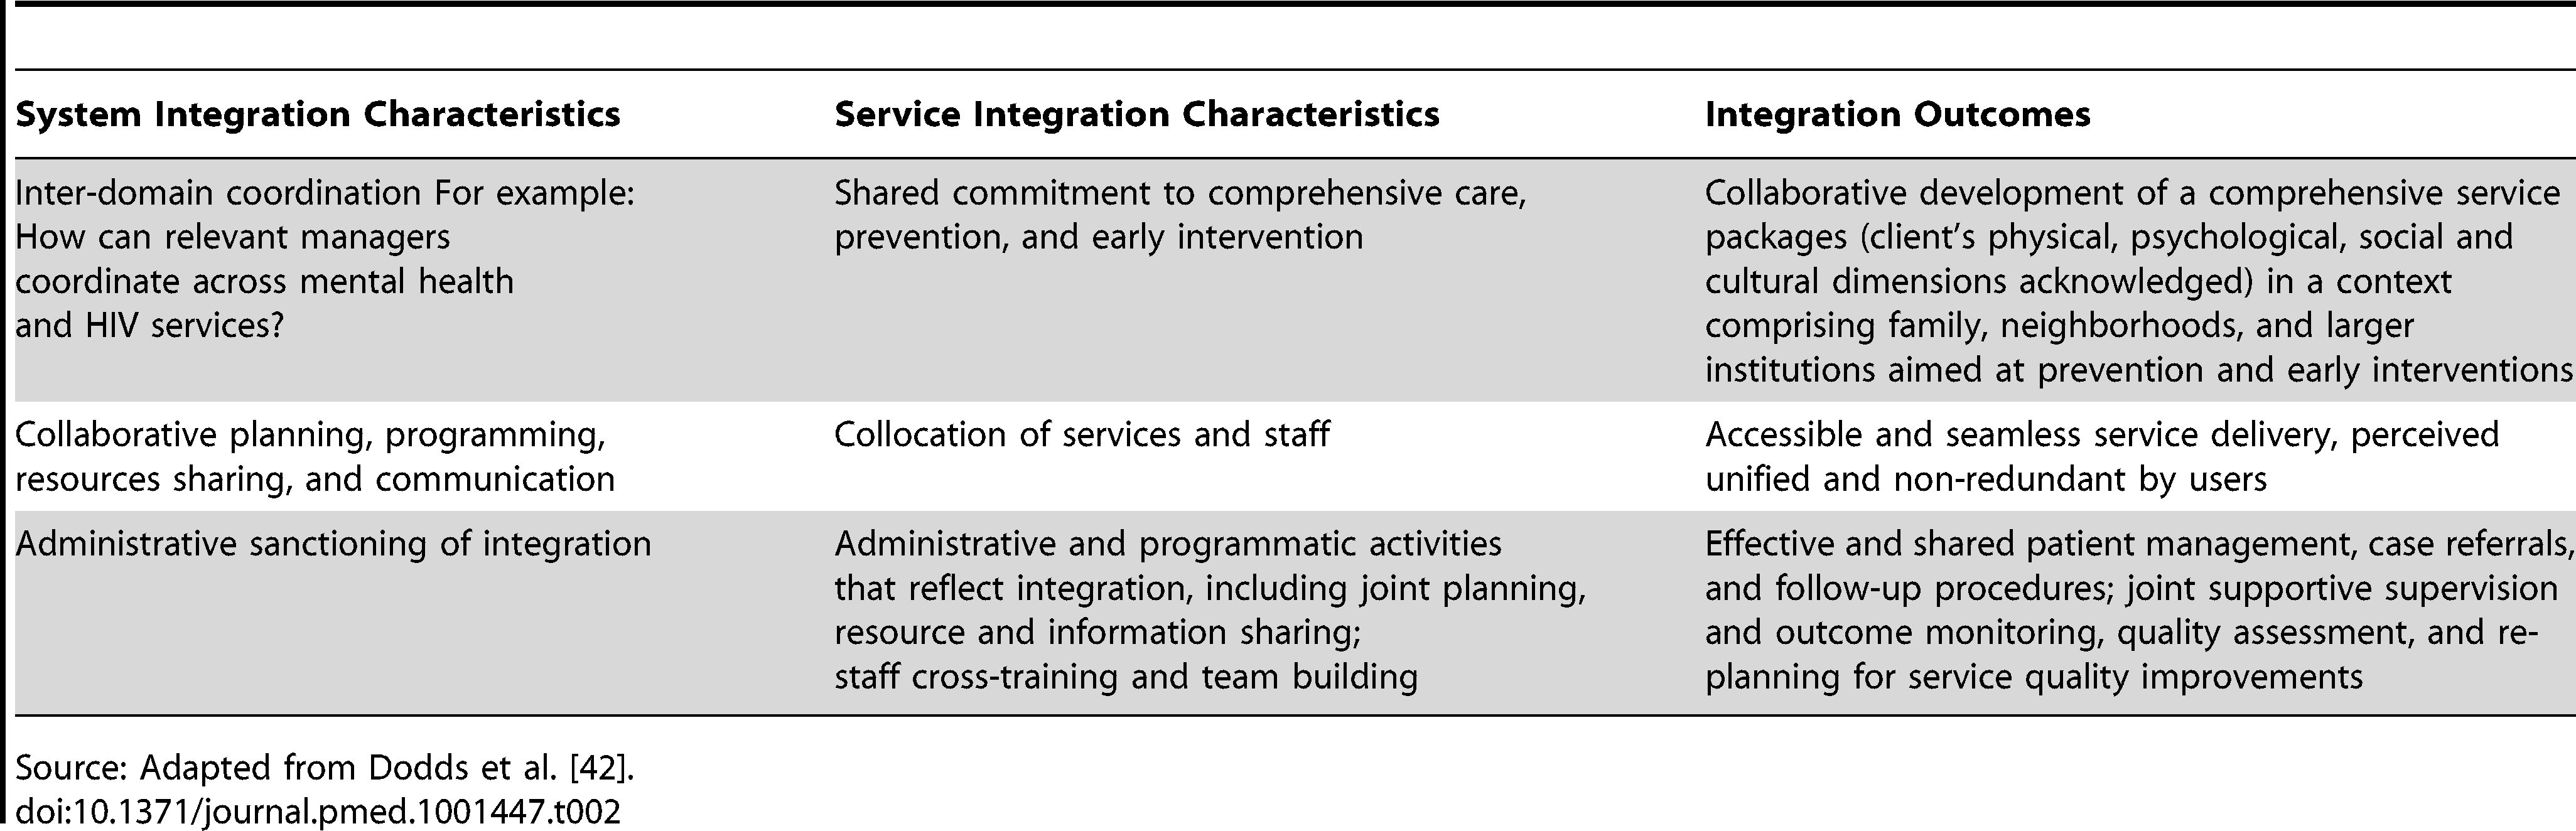 Integrating Mental Health Services into Primary HIV Care For Women: The Whole Life Project.